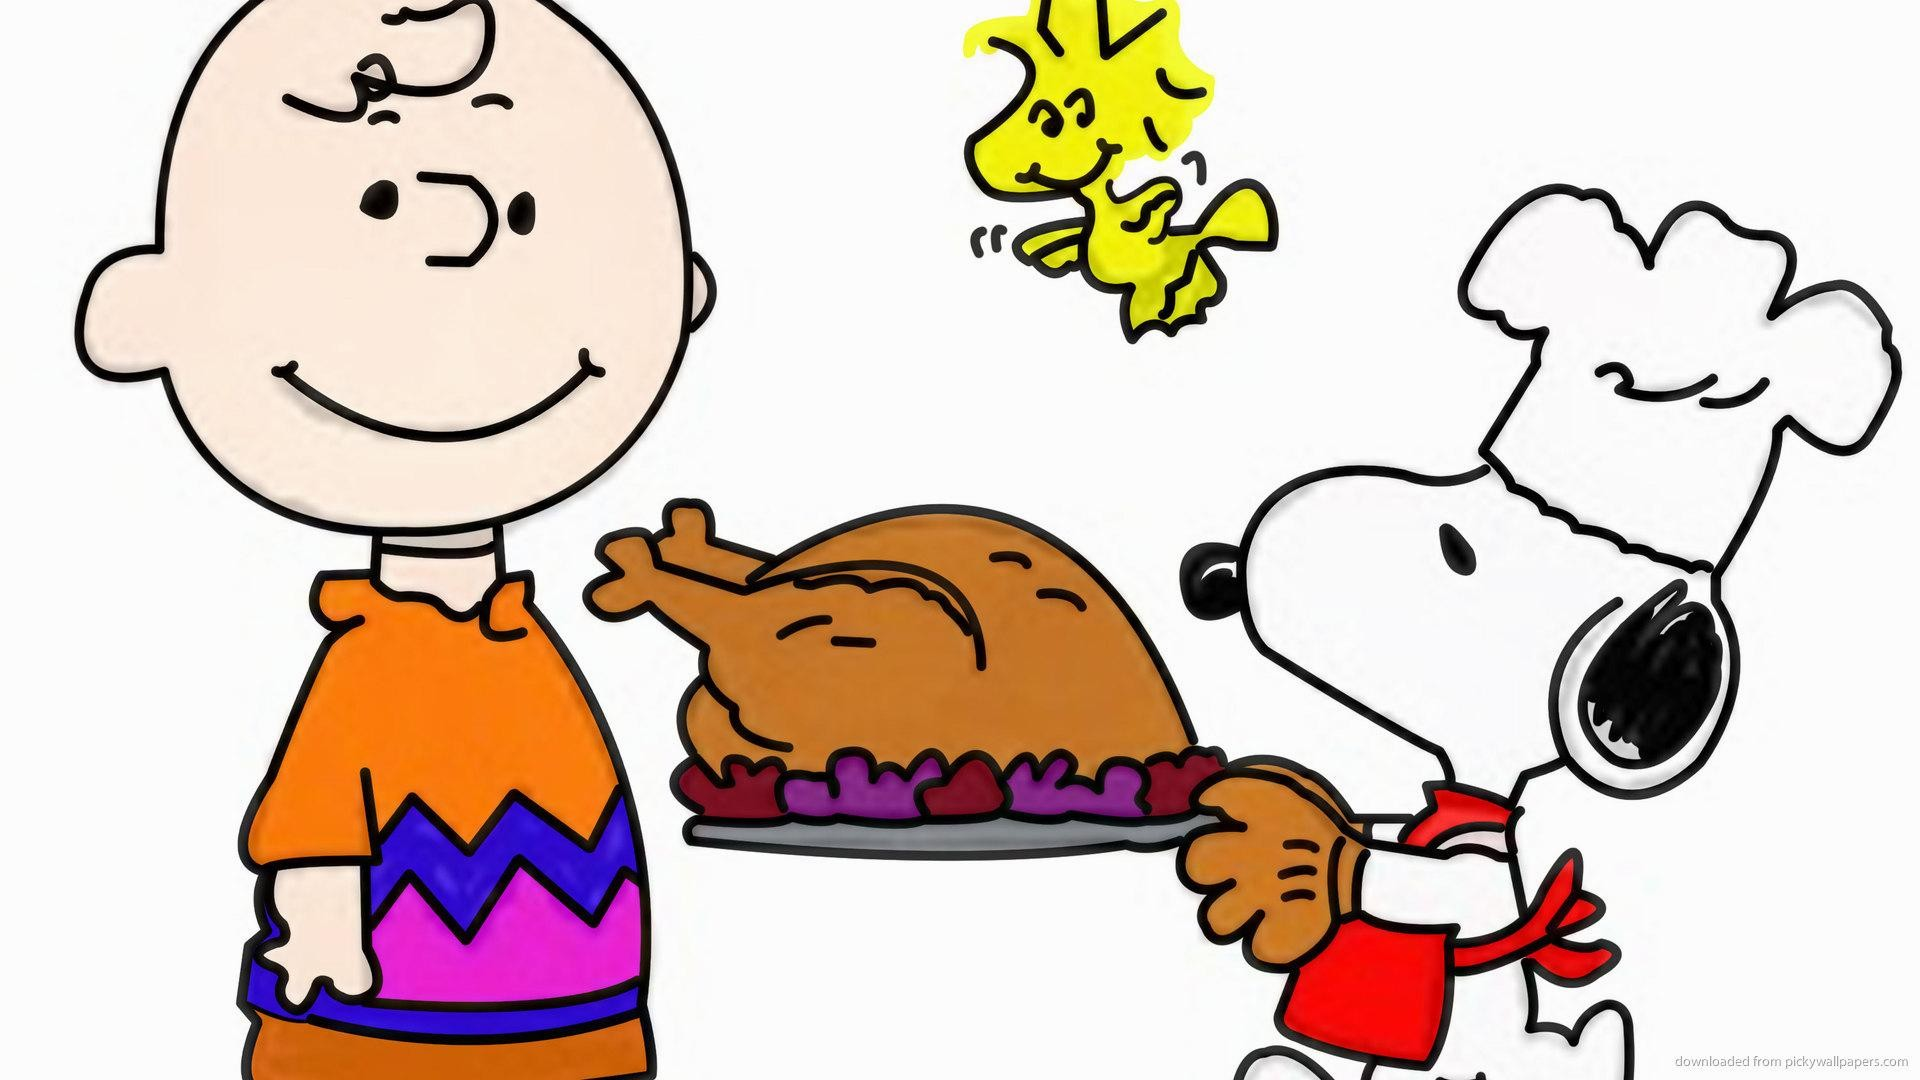 1920x1080 ... snoopy wallpaper hd page 3 of 3 wallpaper wiki ...